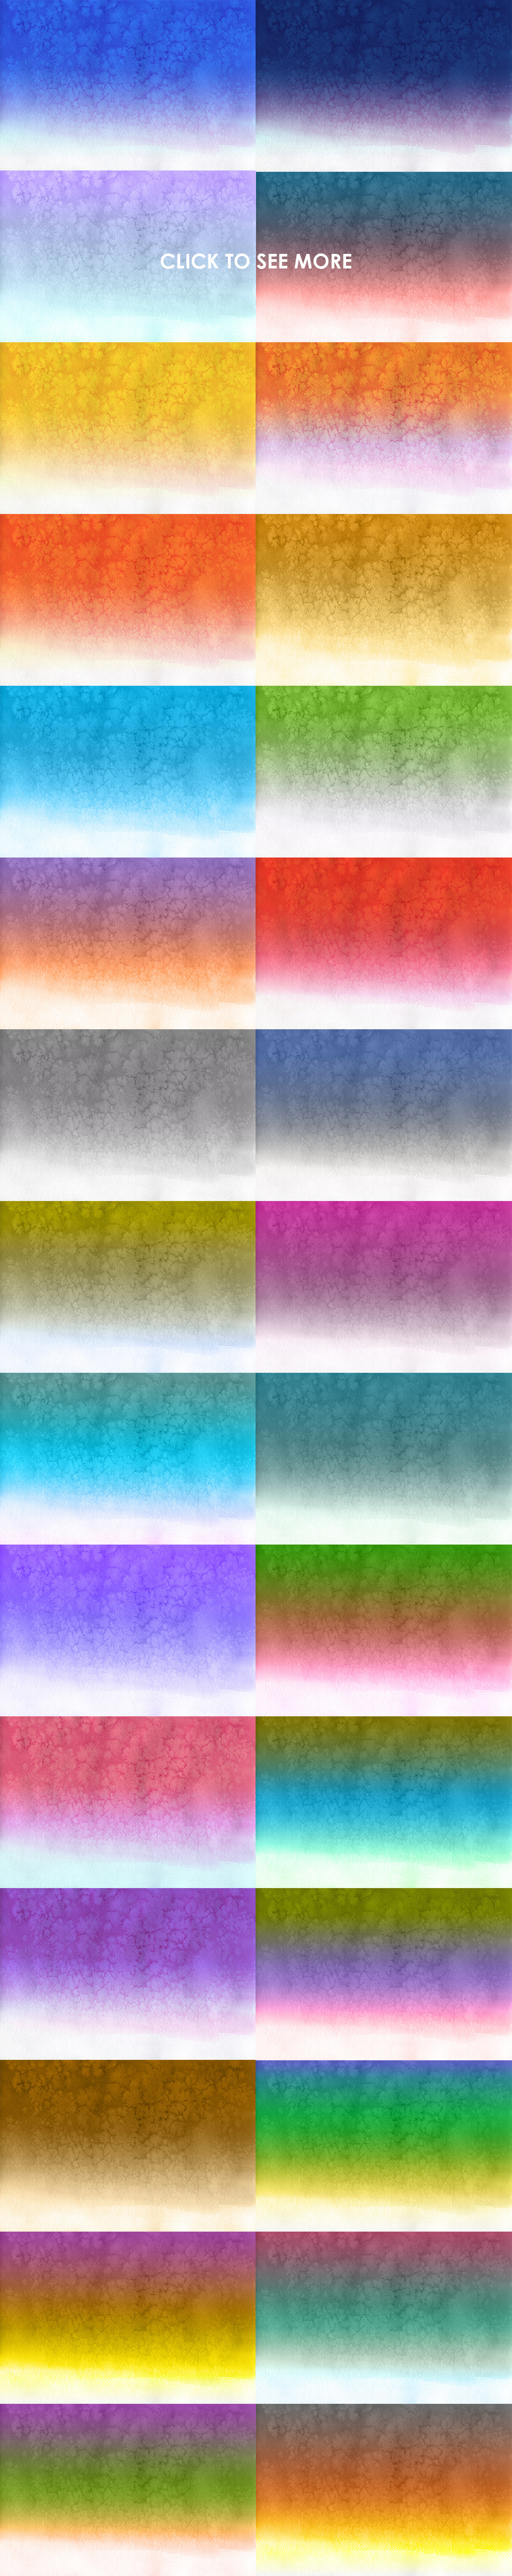 30 Watercolor Gradient Backgrounds example image 2